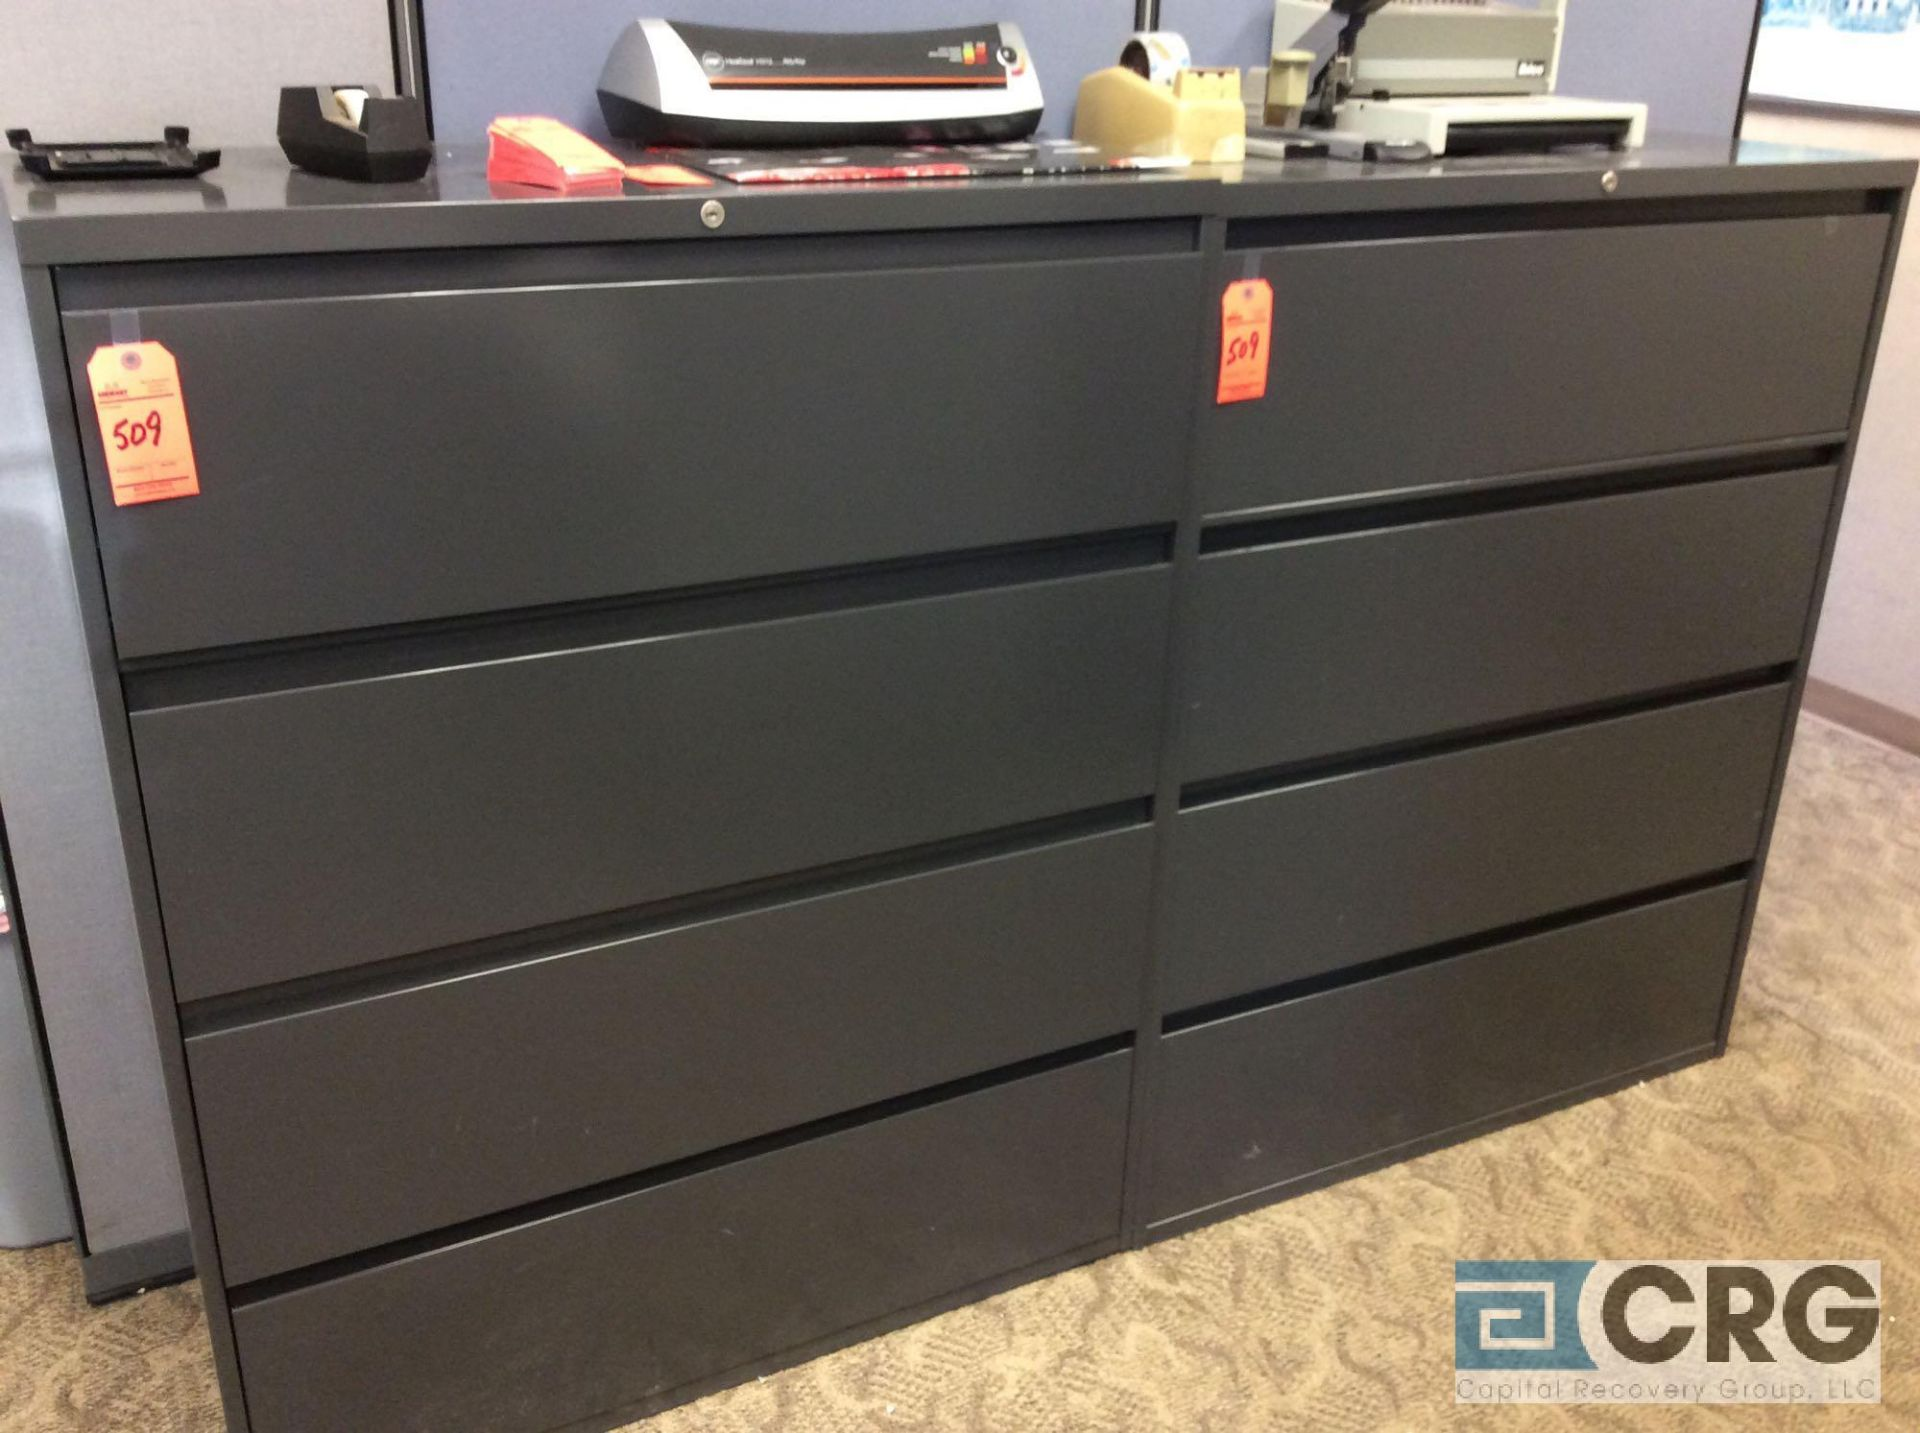 Lot 509 - Lot of (2) Steelcase 4-drawer lateral files